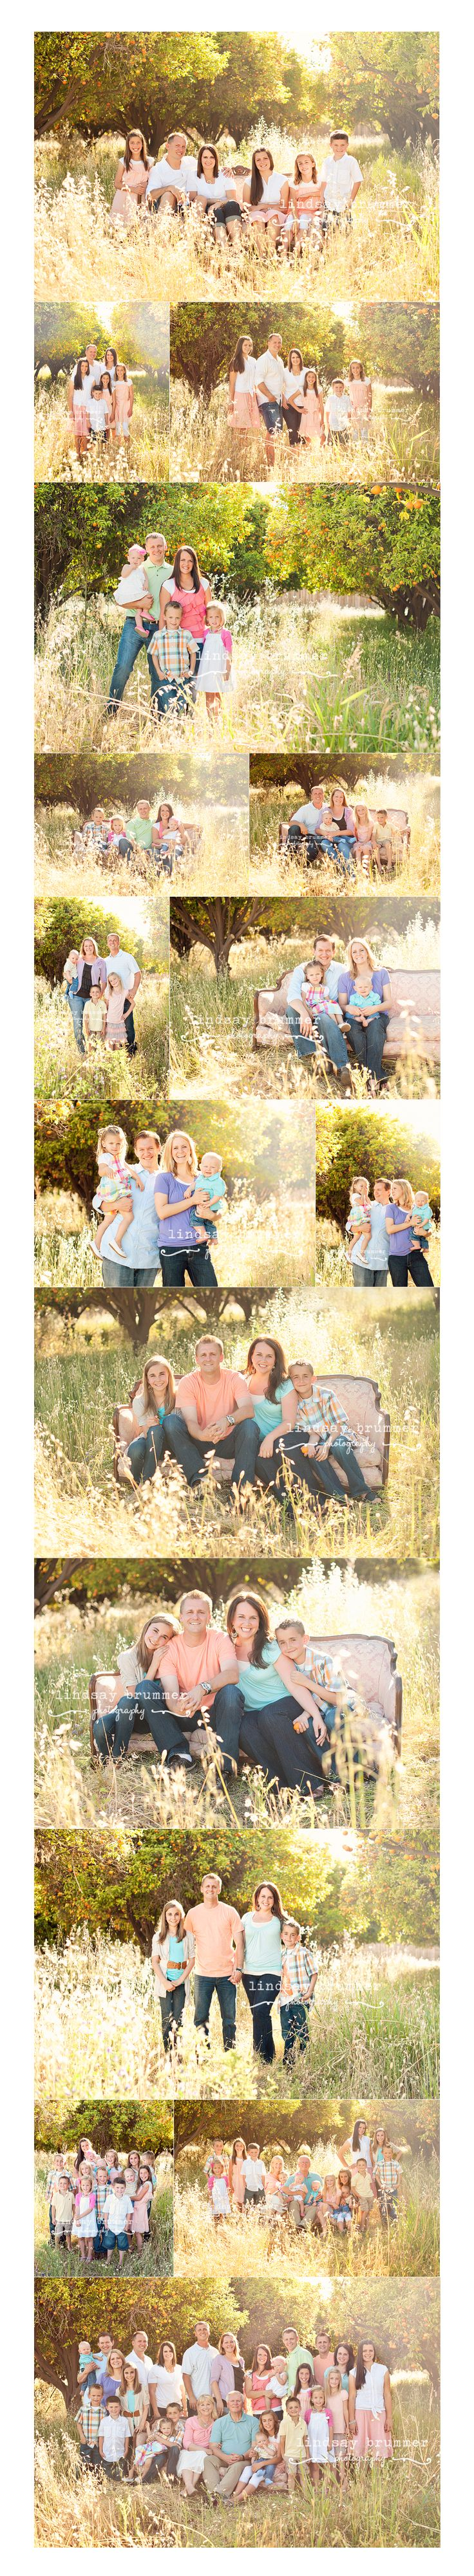 http://lindsaybrummer.com  large family session